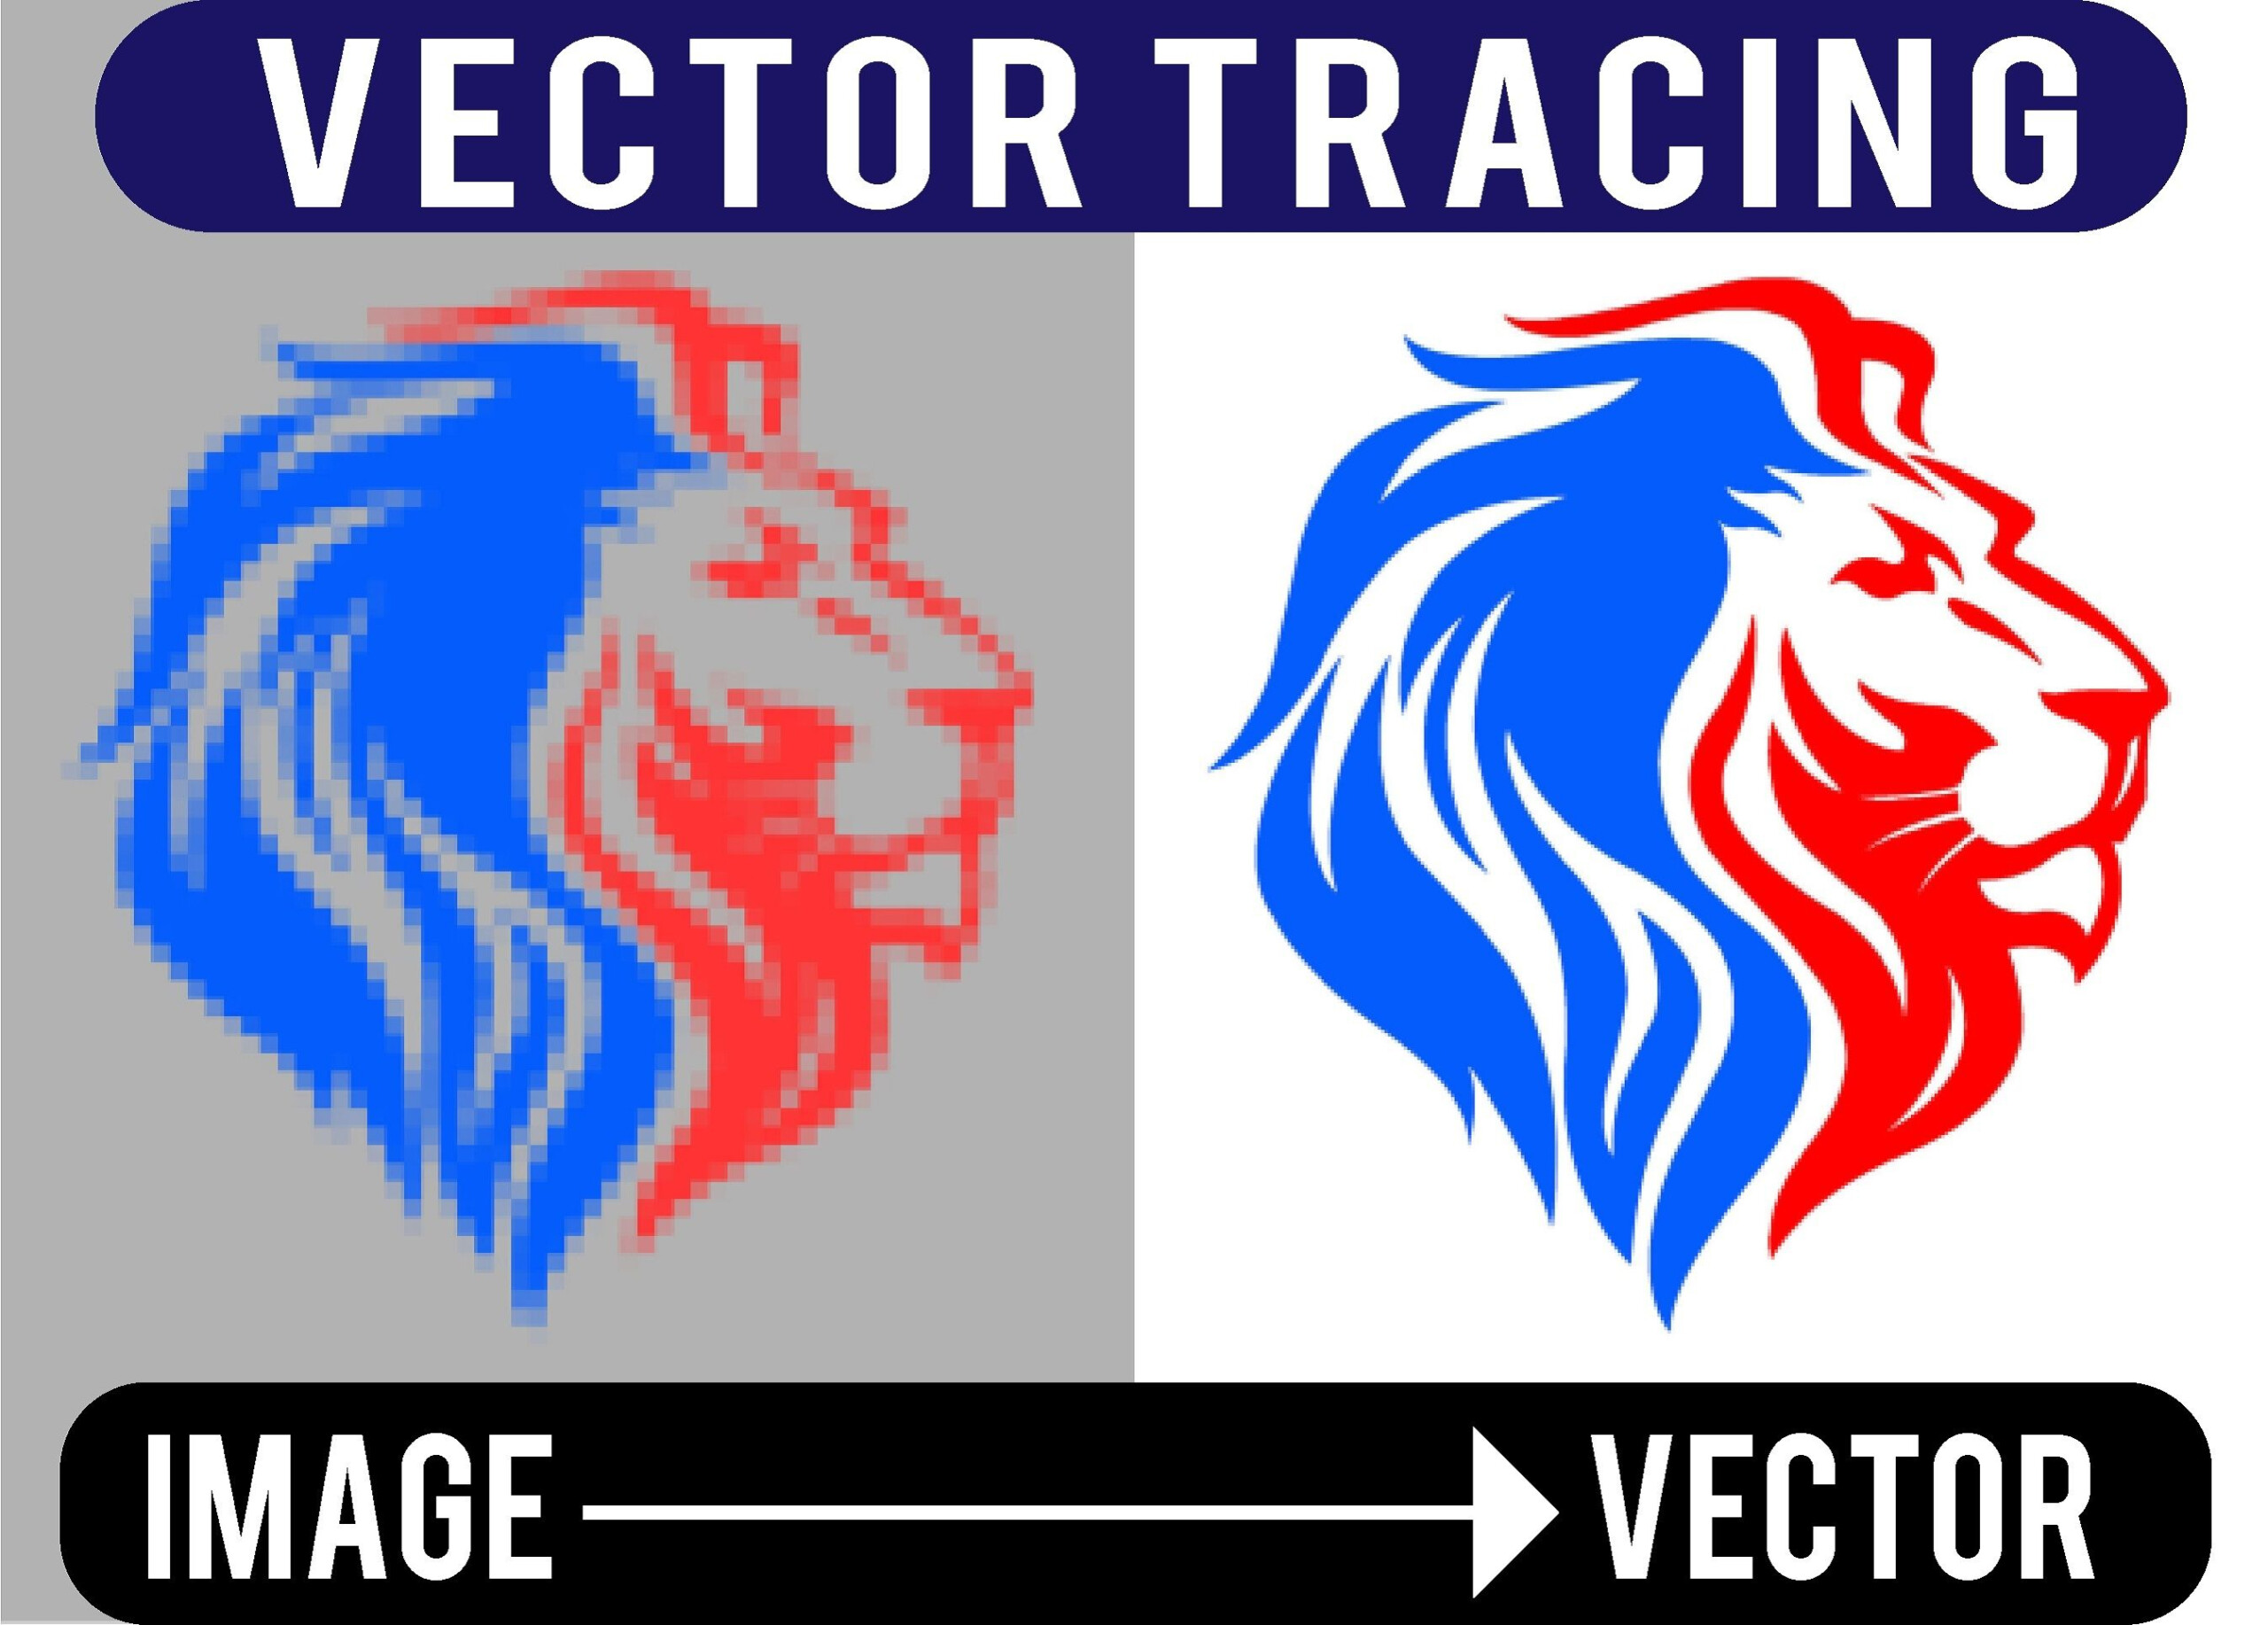 Designimation : I Will Vectorize Your Image Logo To Vector